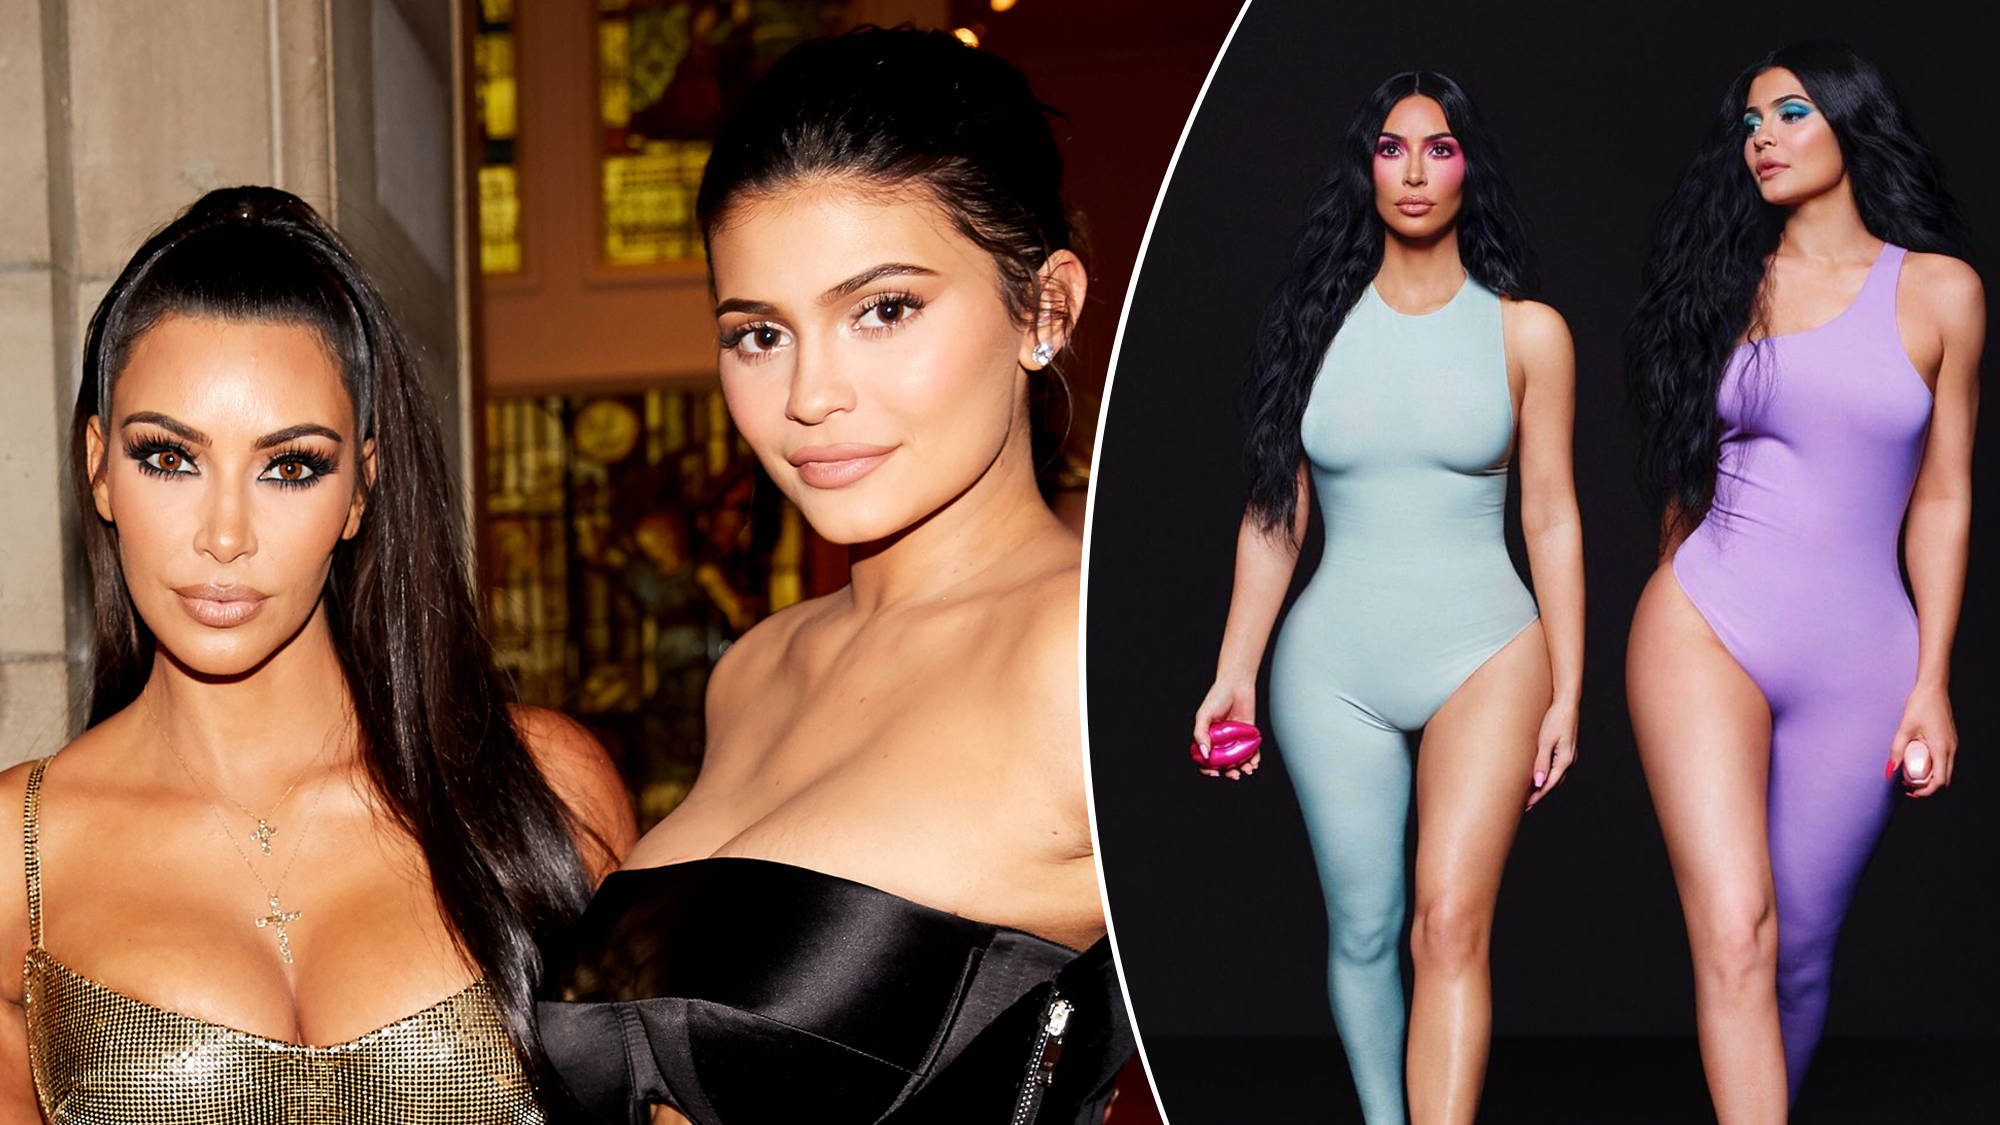 Kim Kardashian & Kylie Jenner Trolled After Photoshop Fail Leaves Them With 'Six Toes'